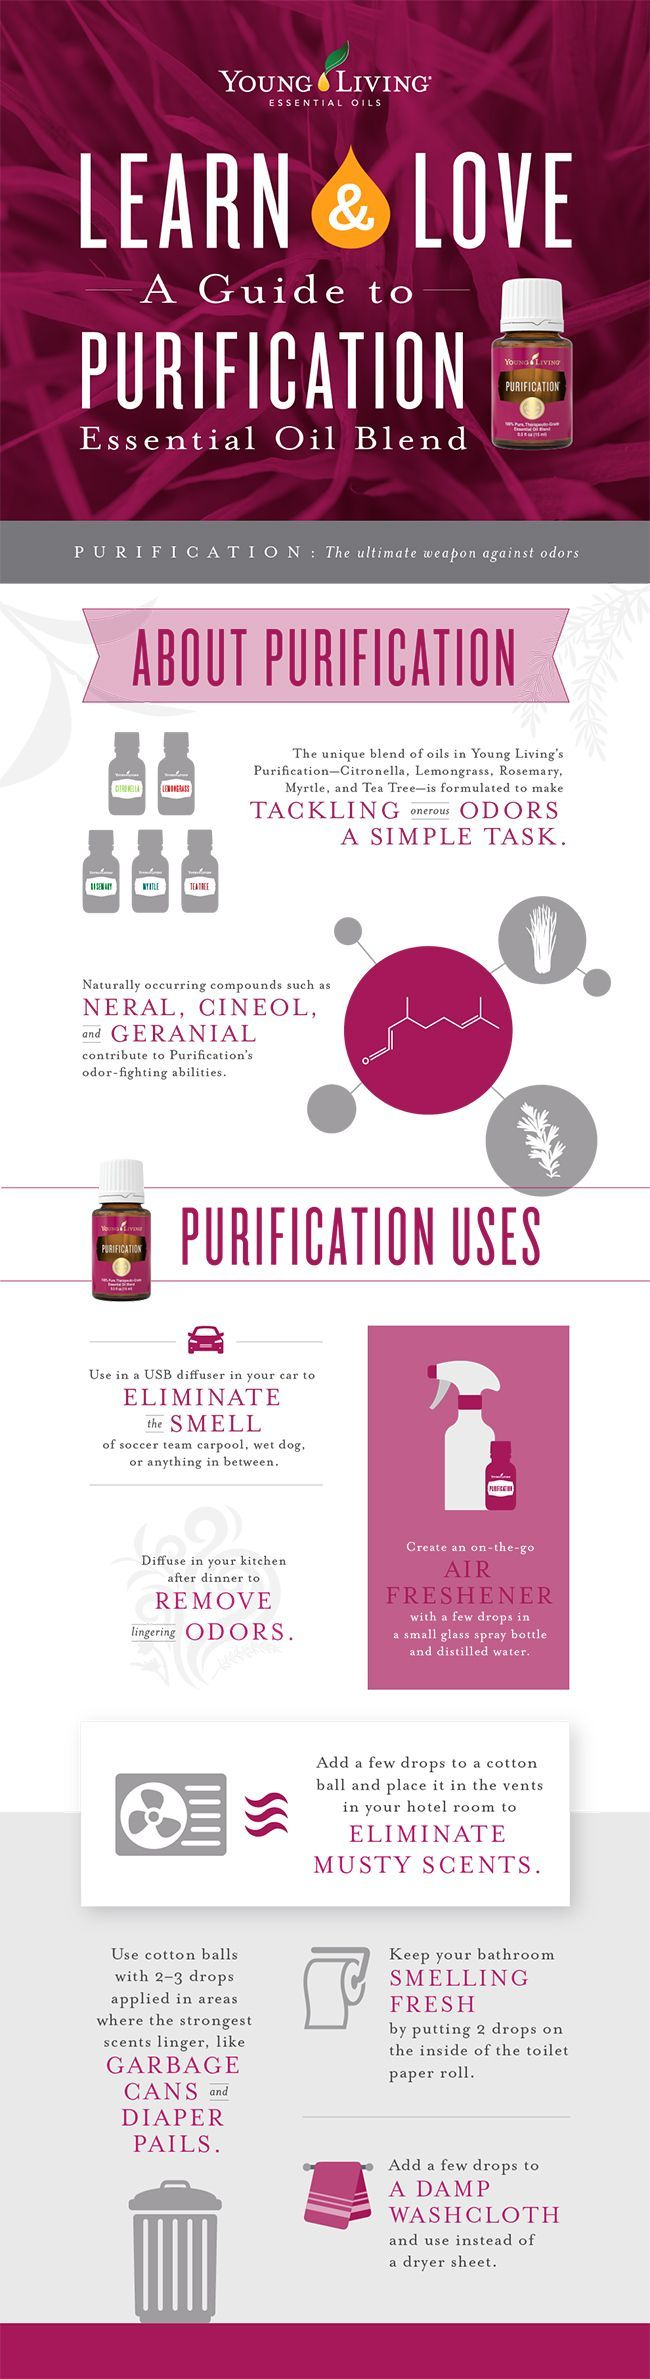 Purification essential oil learn and love | WWW.THESAVVYOILER.COM